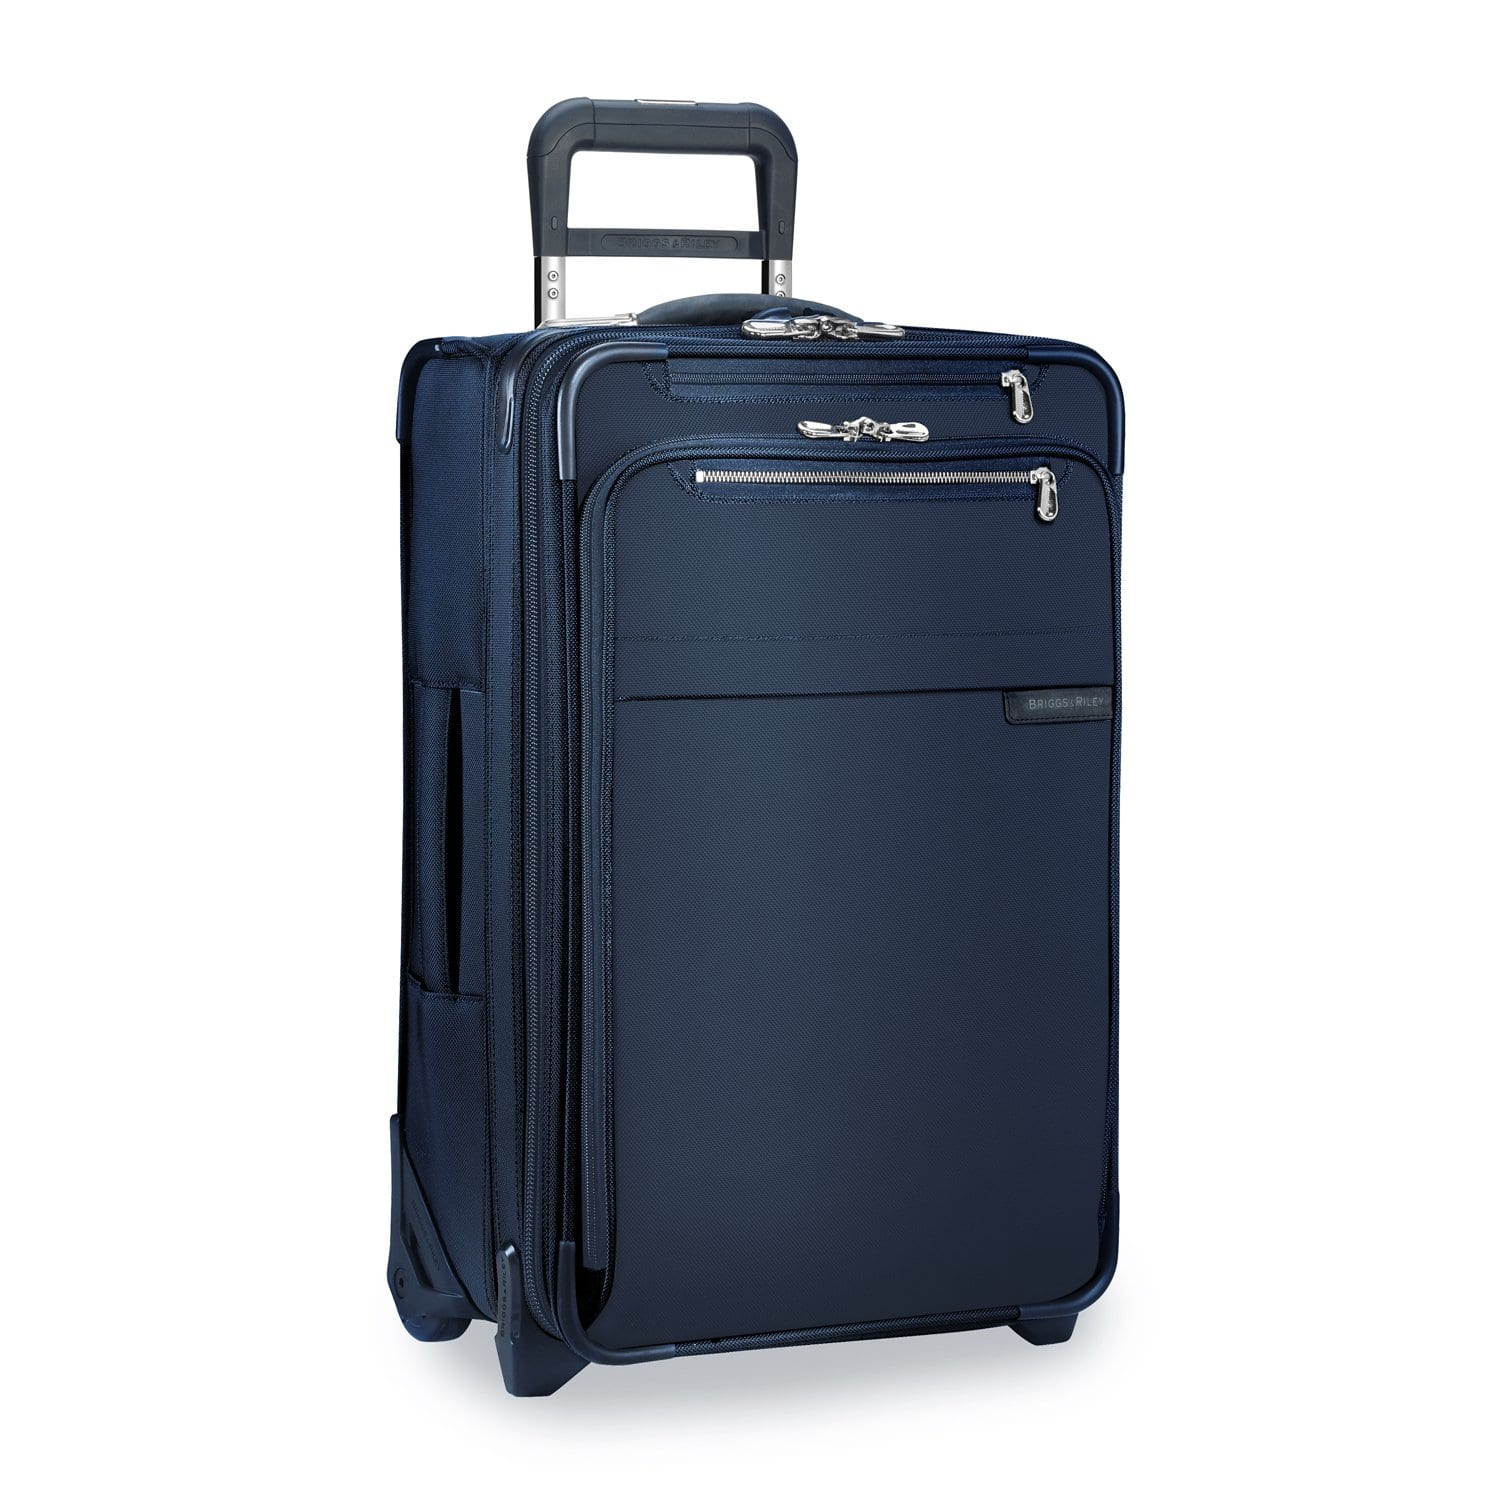 Briggs & Riley Baseline Upright Domestic Carry On (2 wheeler, navy) $359.40